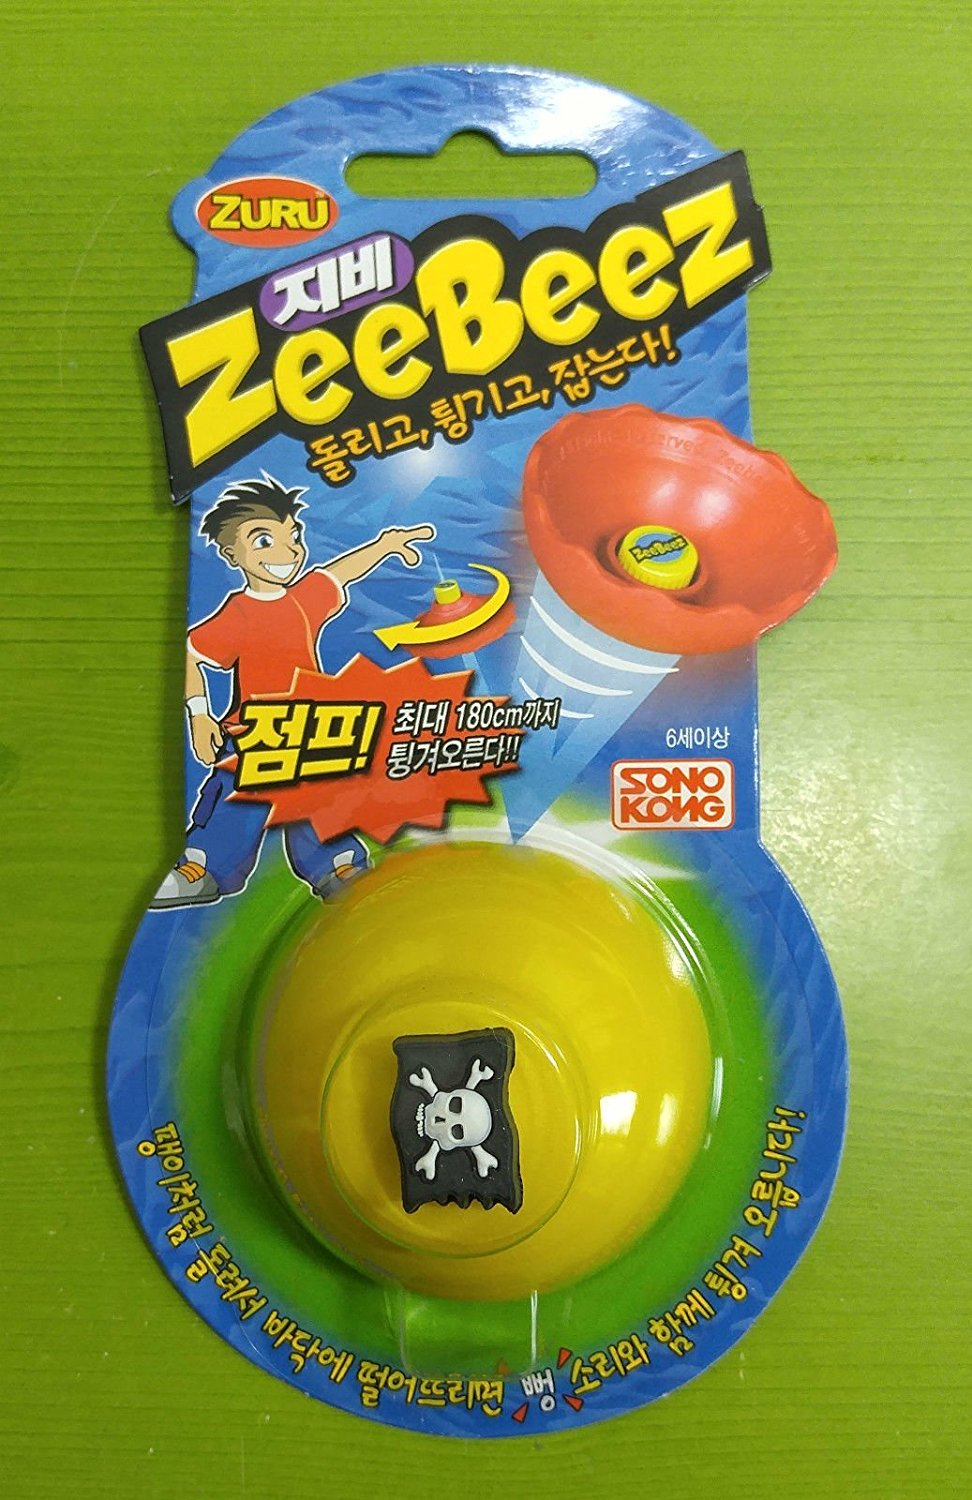 buy zany wooden toys that whiz, spin, pop, and fly: 28